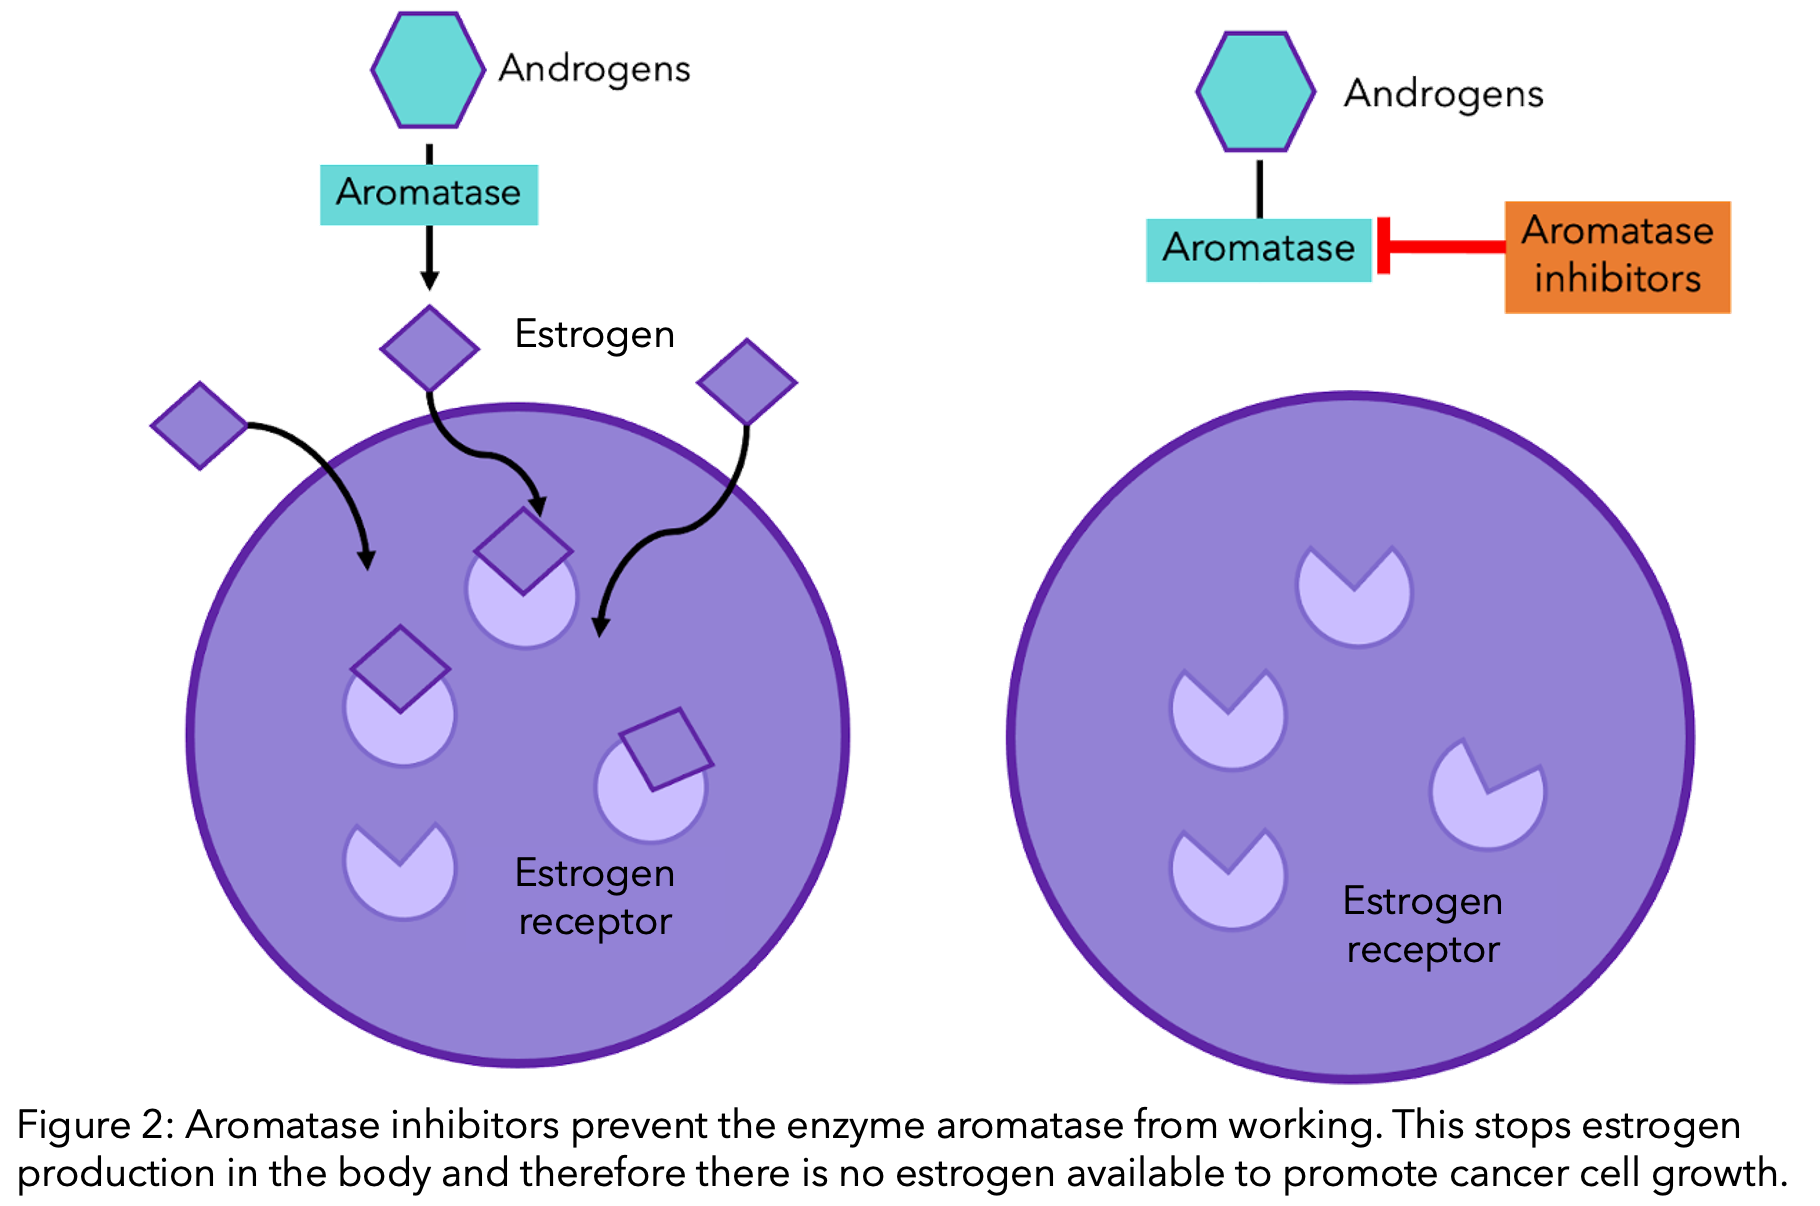 Aromatase inhibitors prevent the enzyme aromatase from working. This stops estrogen production in the body and therefore there is no estrogen available to promote cancer cell growth.